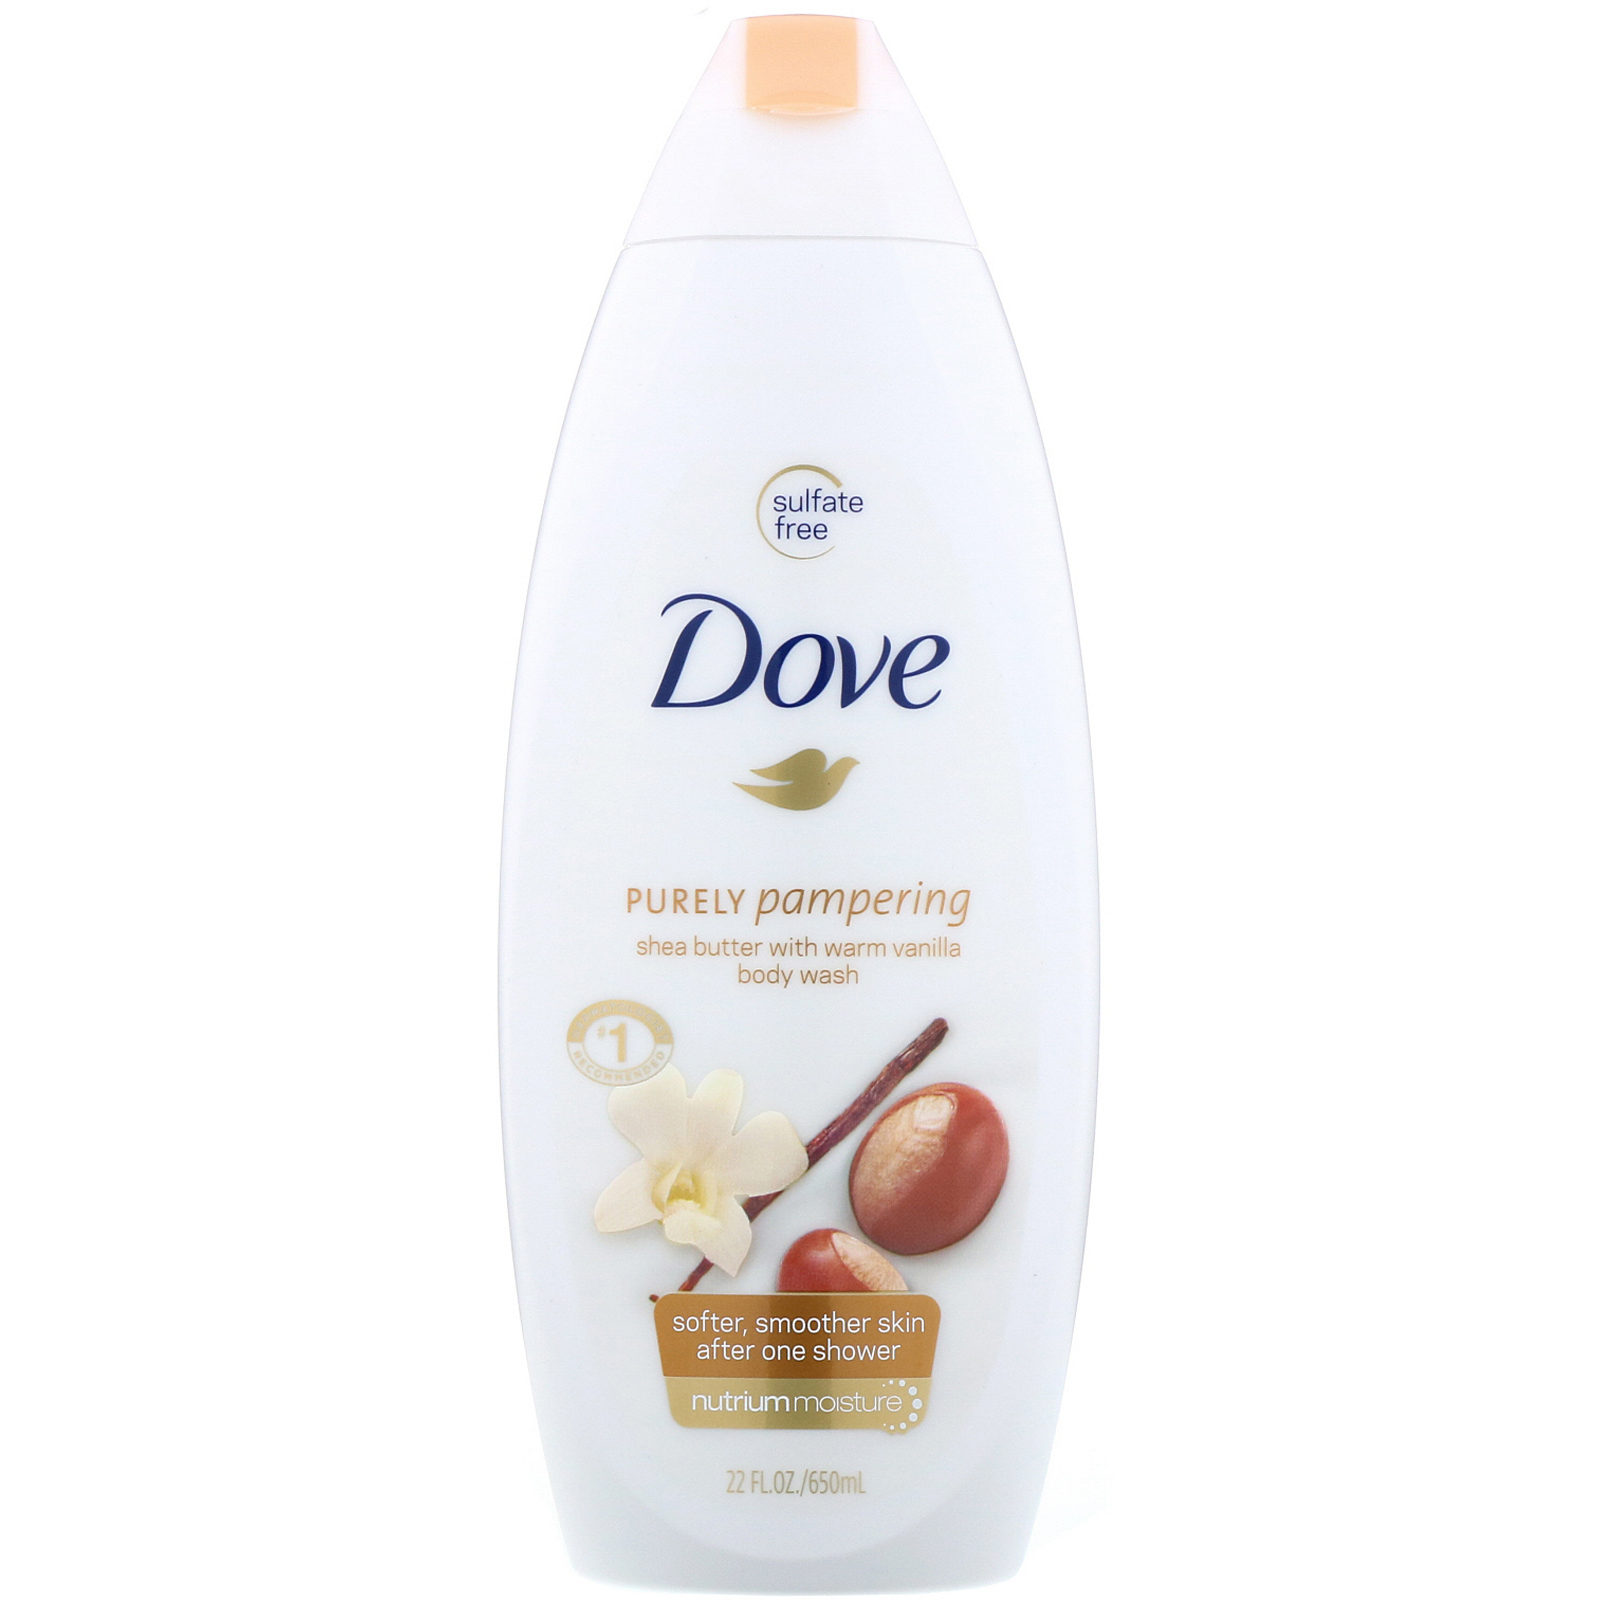 Dove Purely Pampering Body Wash Shea Butter With Warm Vanilla 22 Fl Oz 650 Ml Iherb